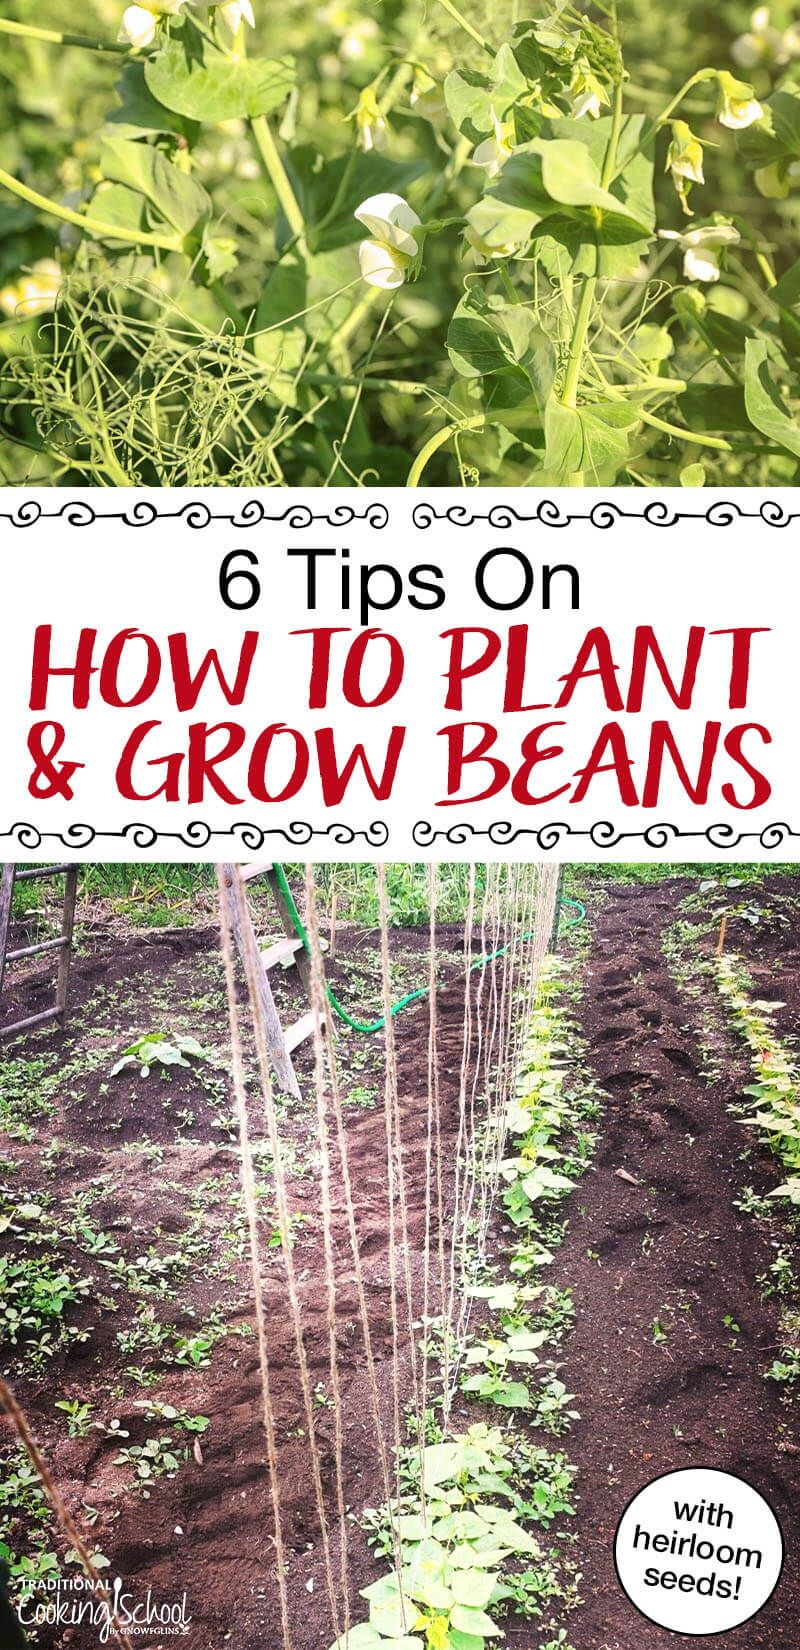 How To Grow Green Beans 6 Tips Growing Green Beans Growing Bush Beans Growing Green Beans Trellis